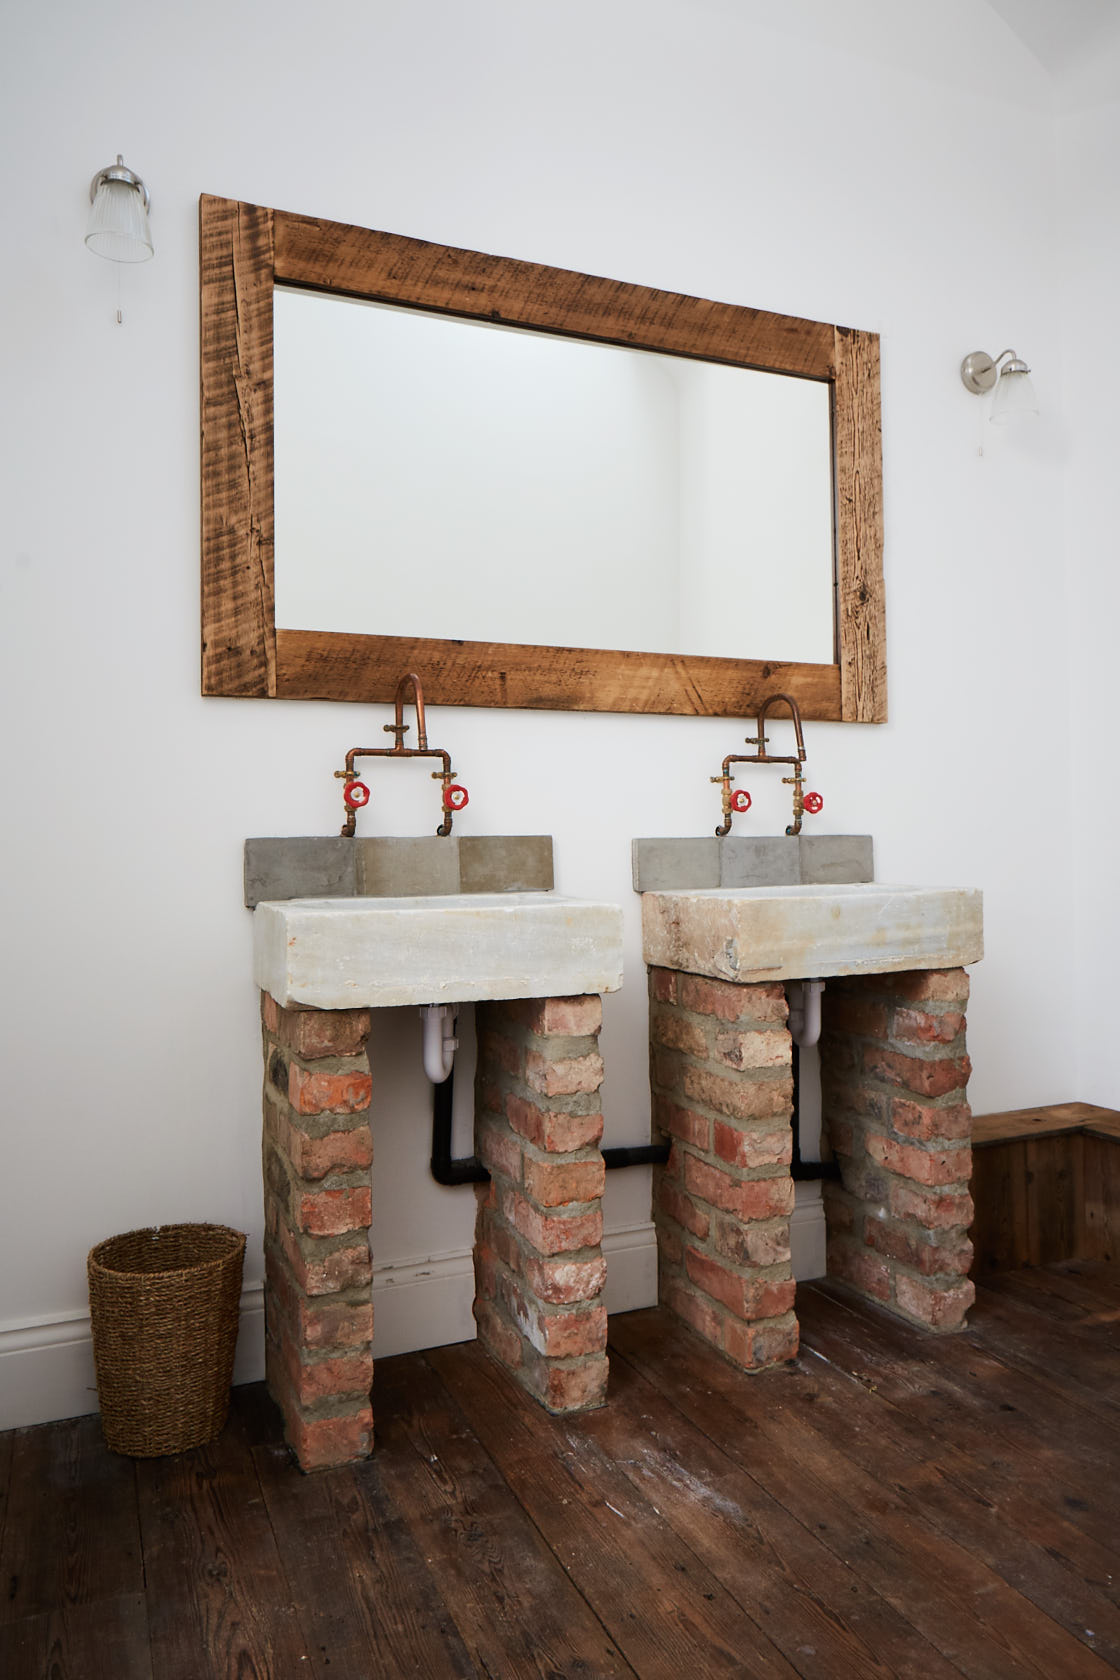 Concrete sinks on bricks with copper pipe taps